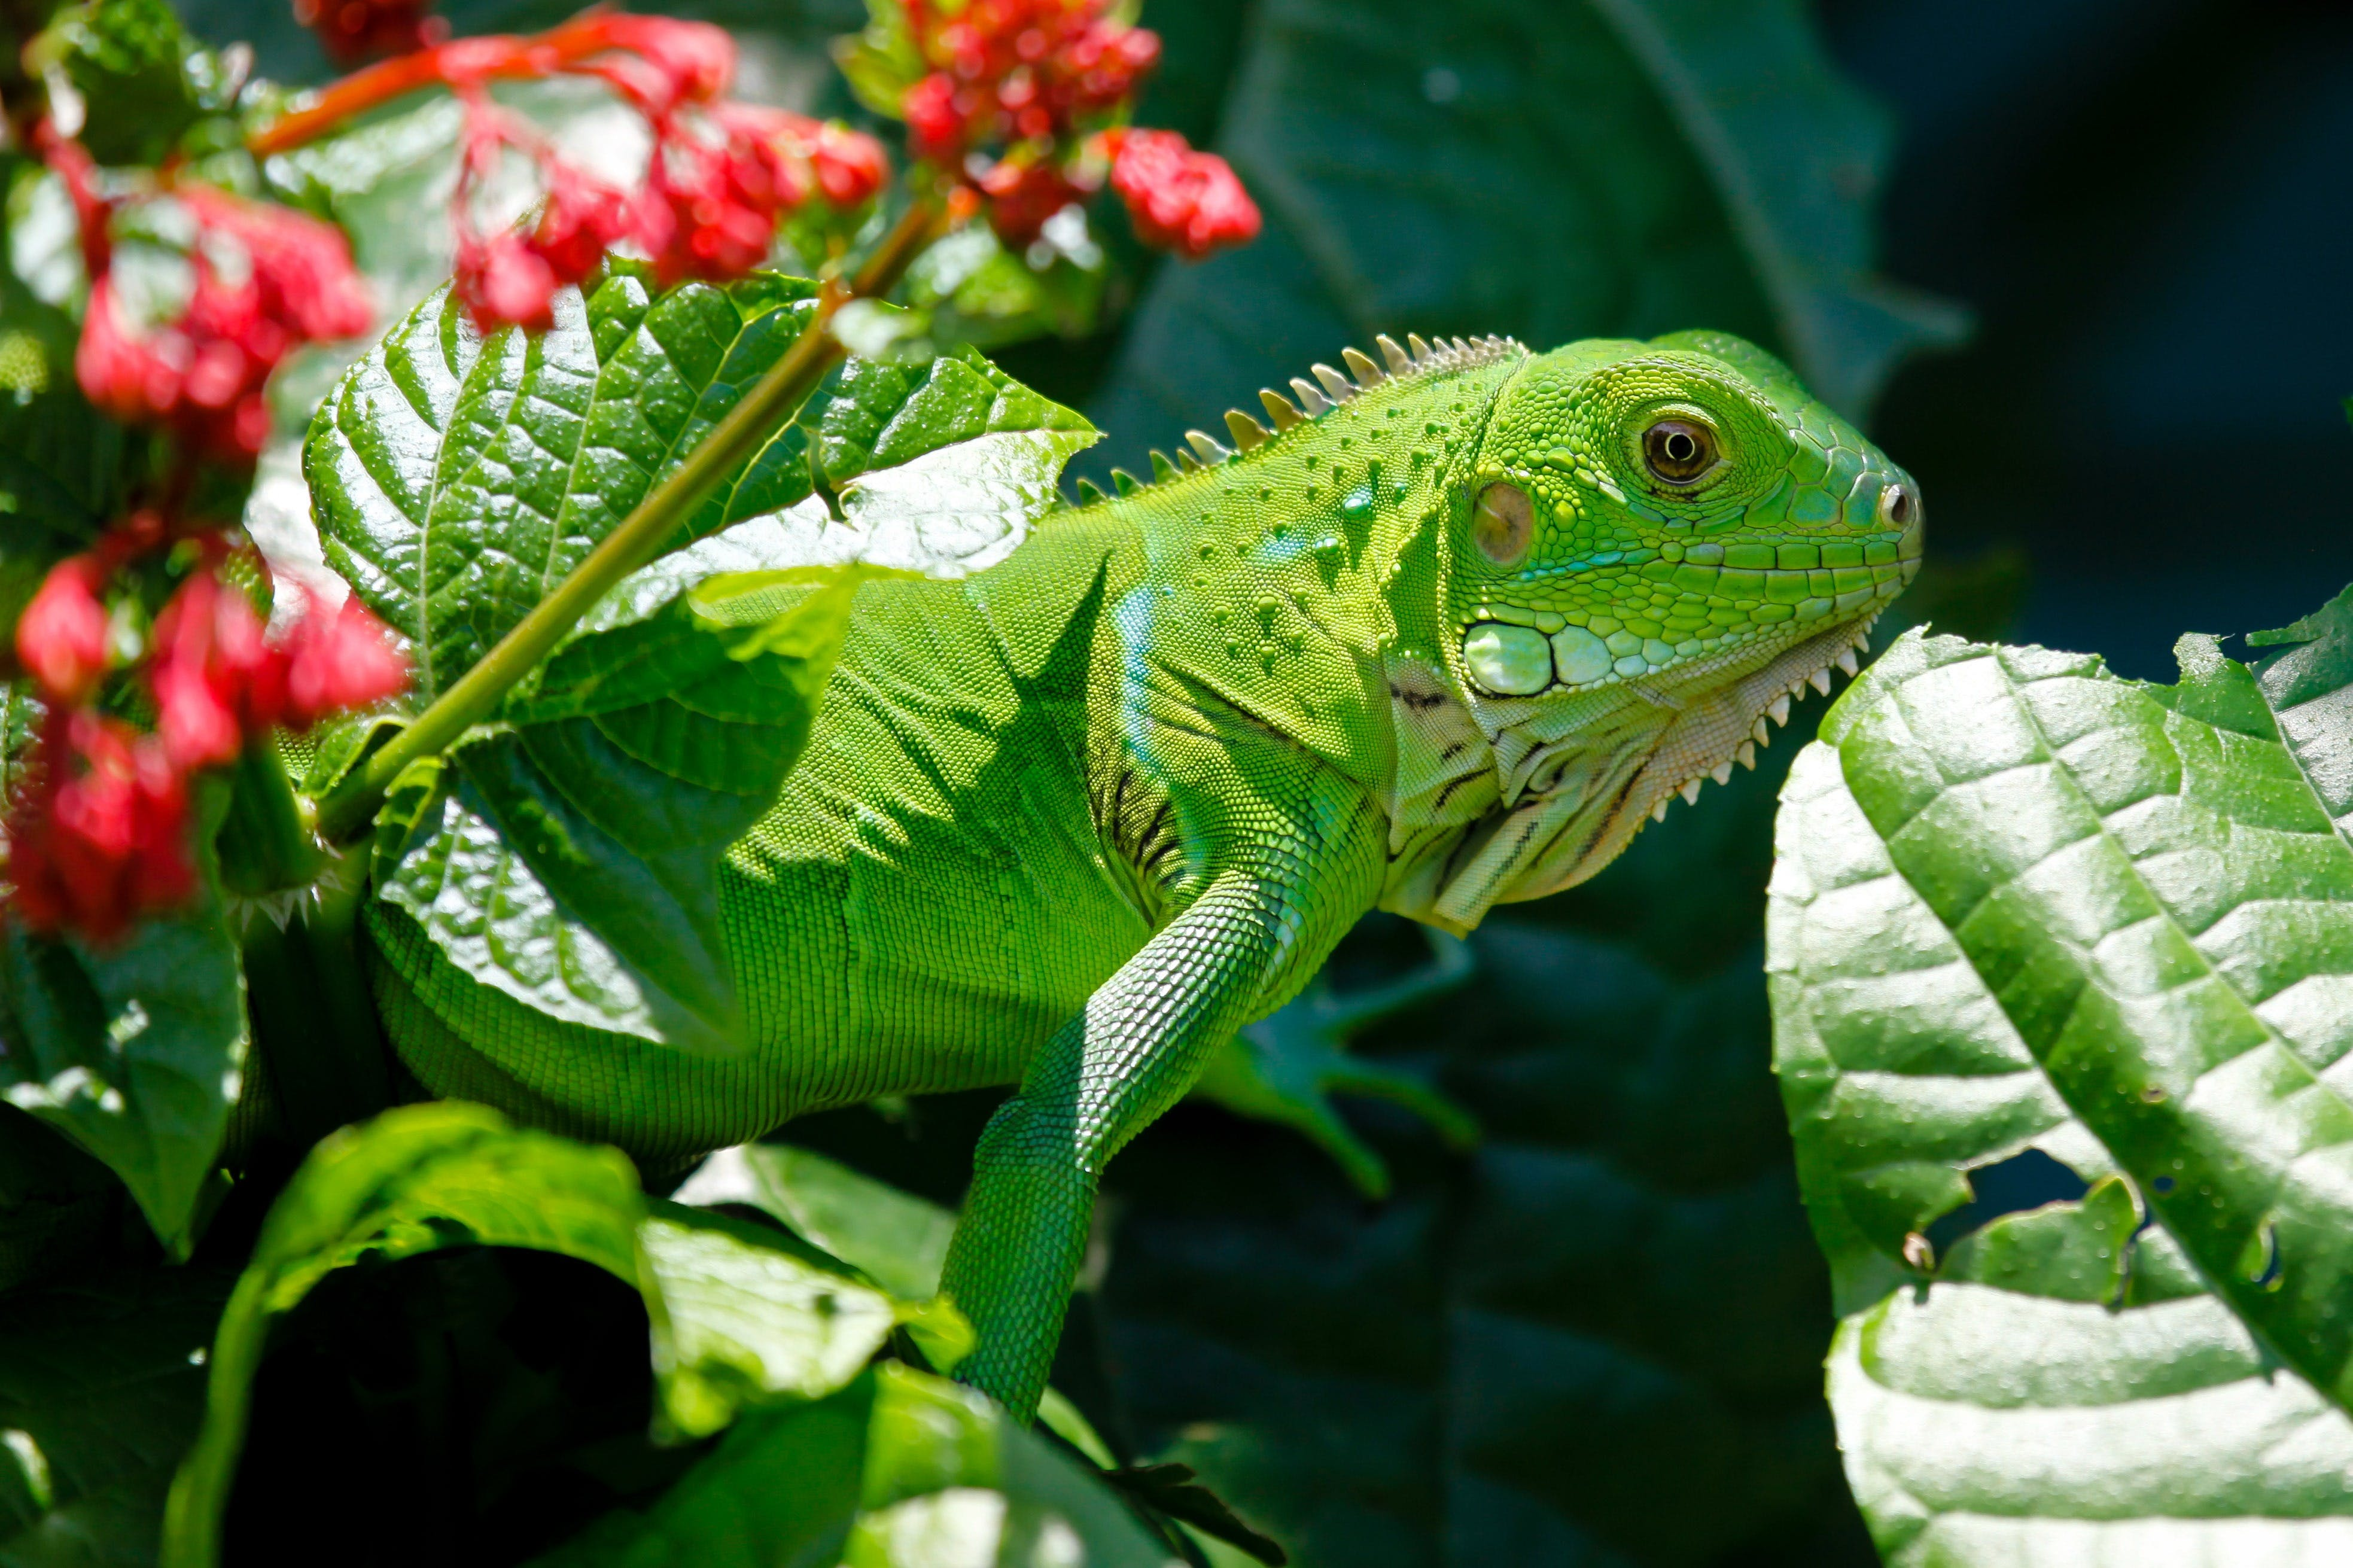 Green Reptile on Red and Green Leaves